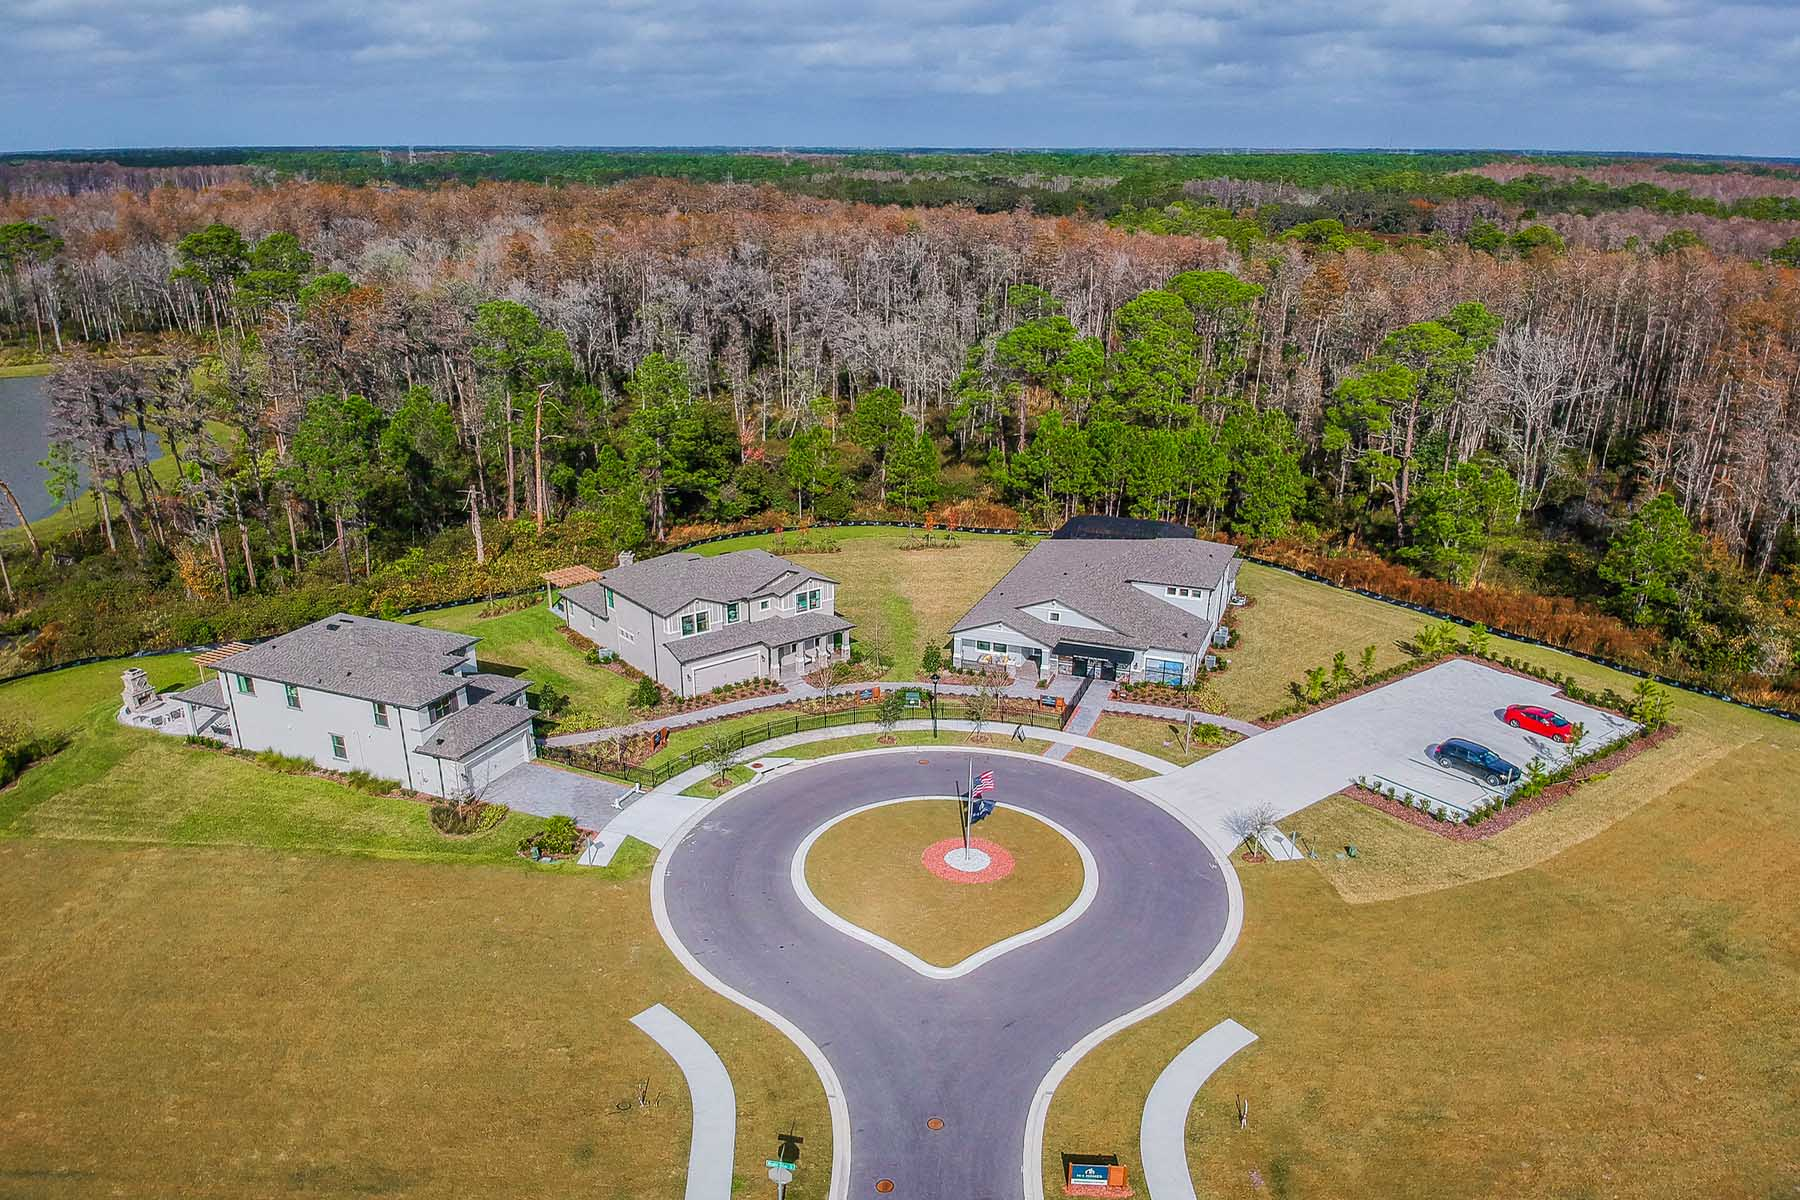 Starkey Ranch Albritton Park Village Aerial